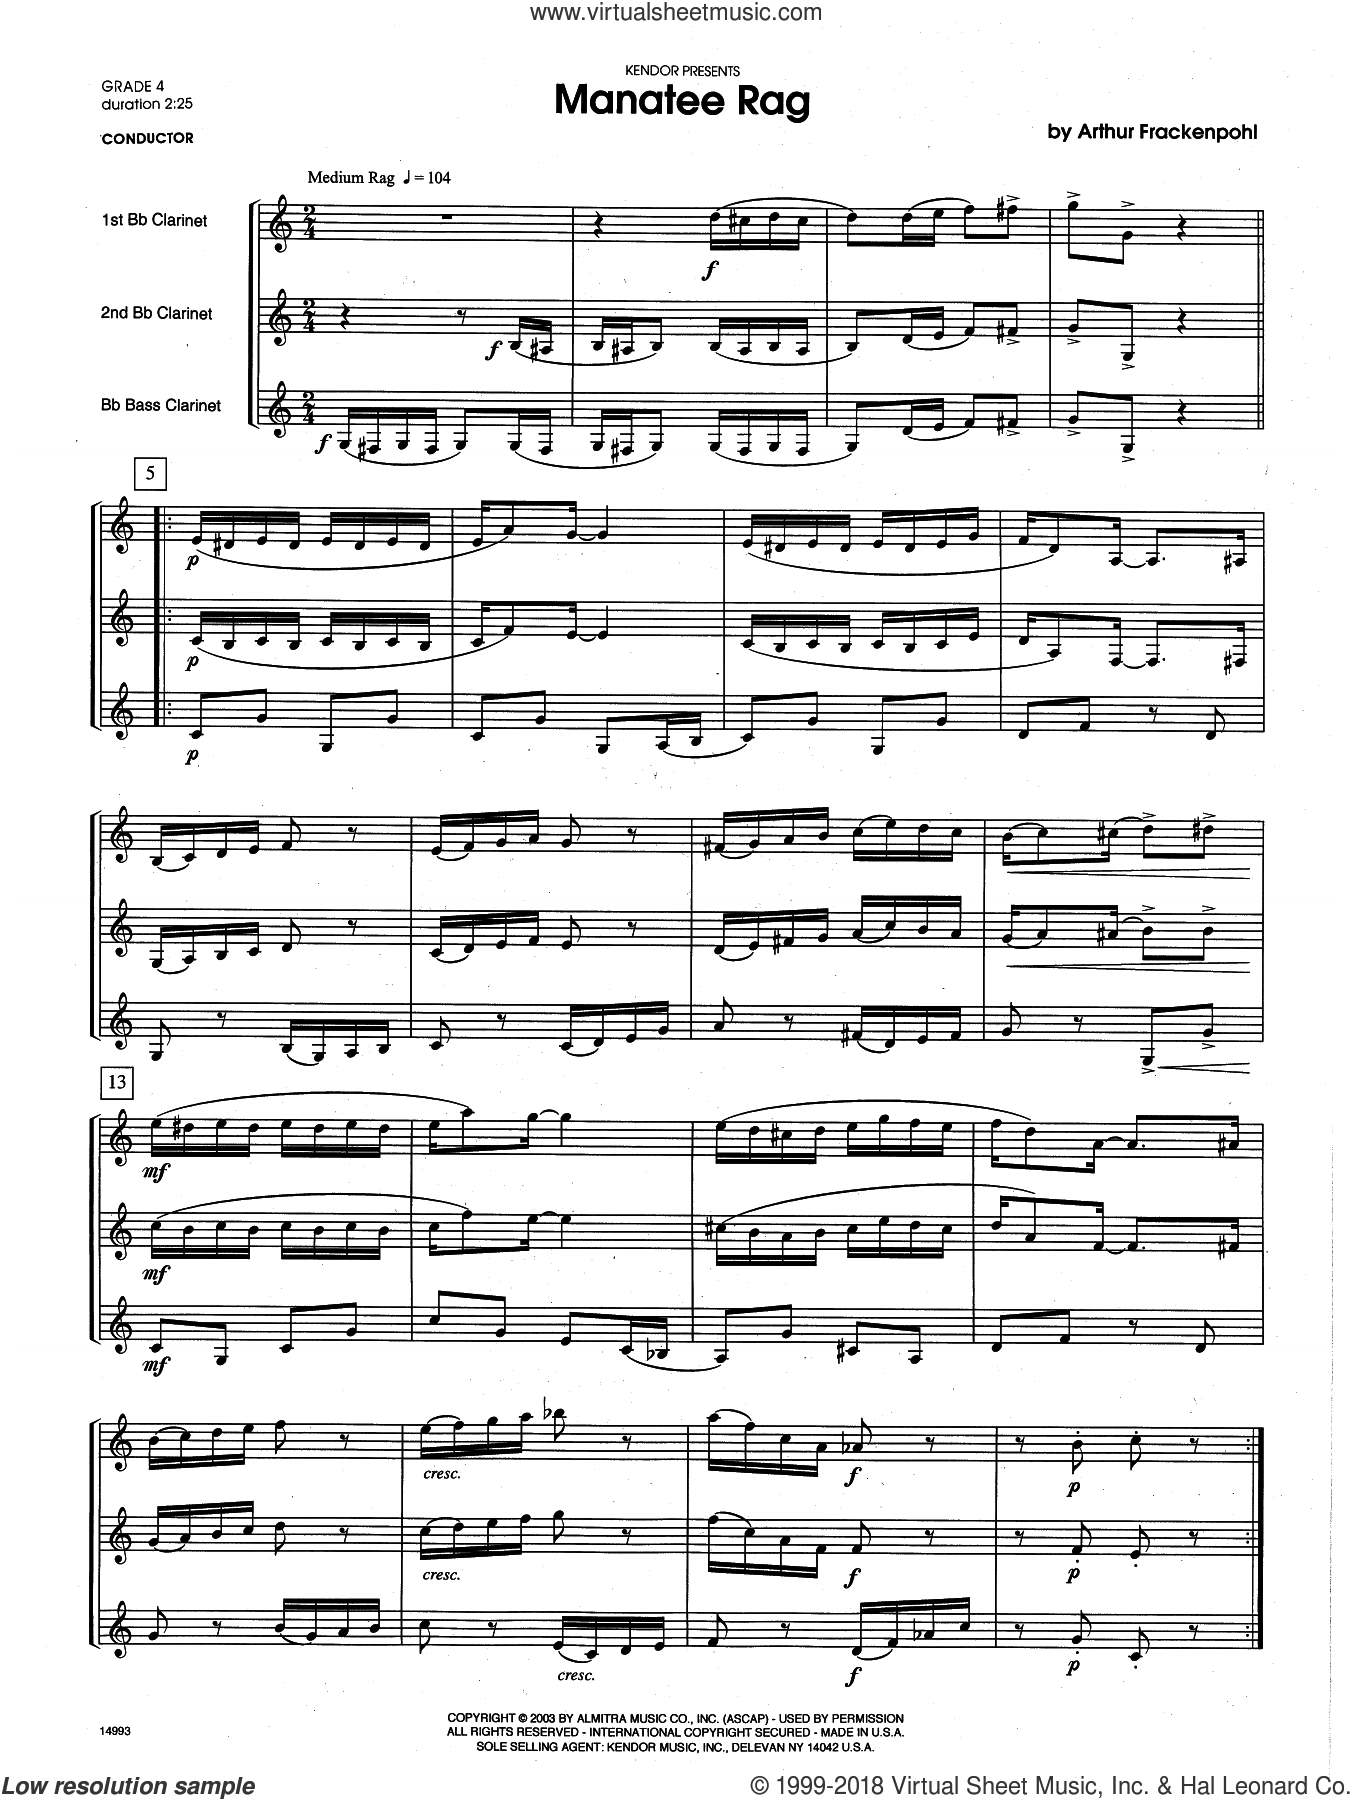 Manatee Rag (COMPLETE) sheet music for clarinet trio by Arthur Frackenpohl, intermediate skill level